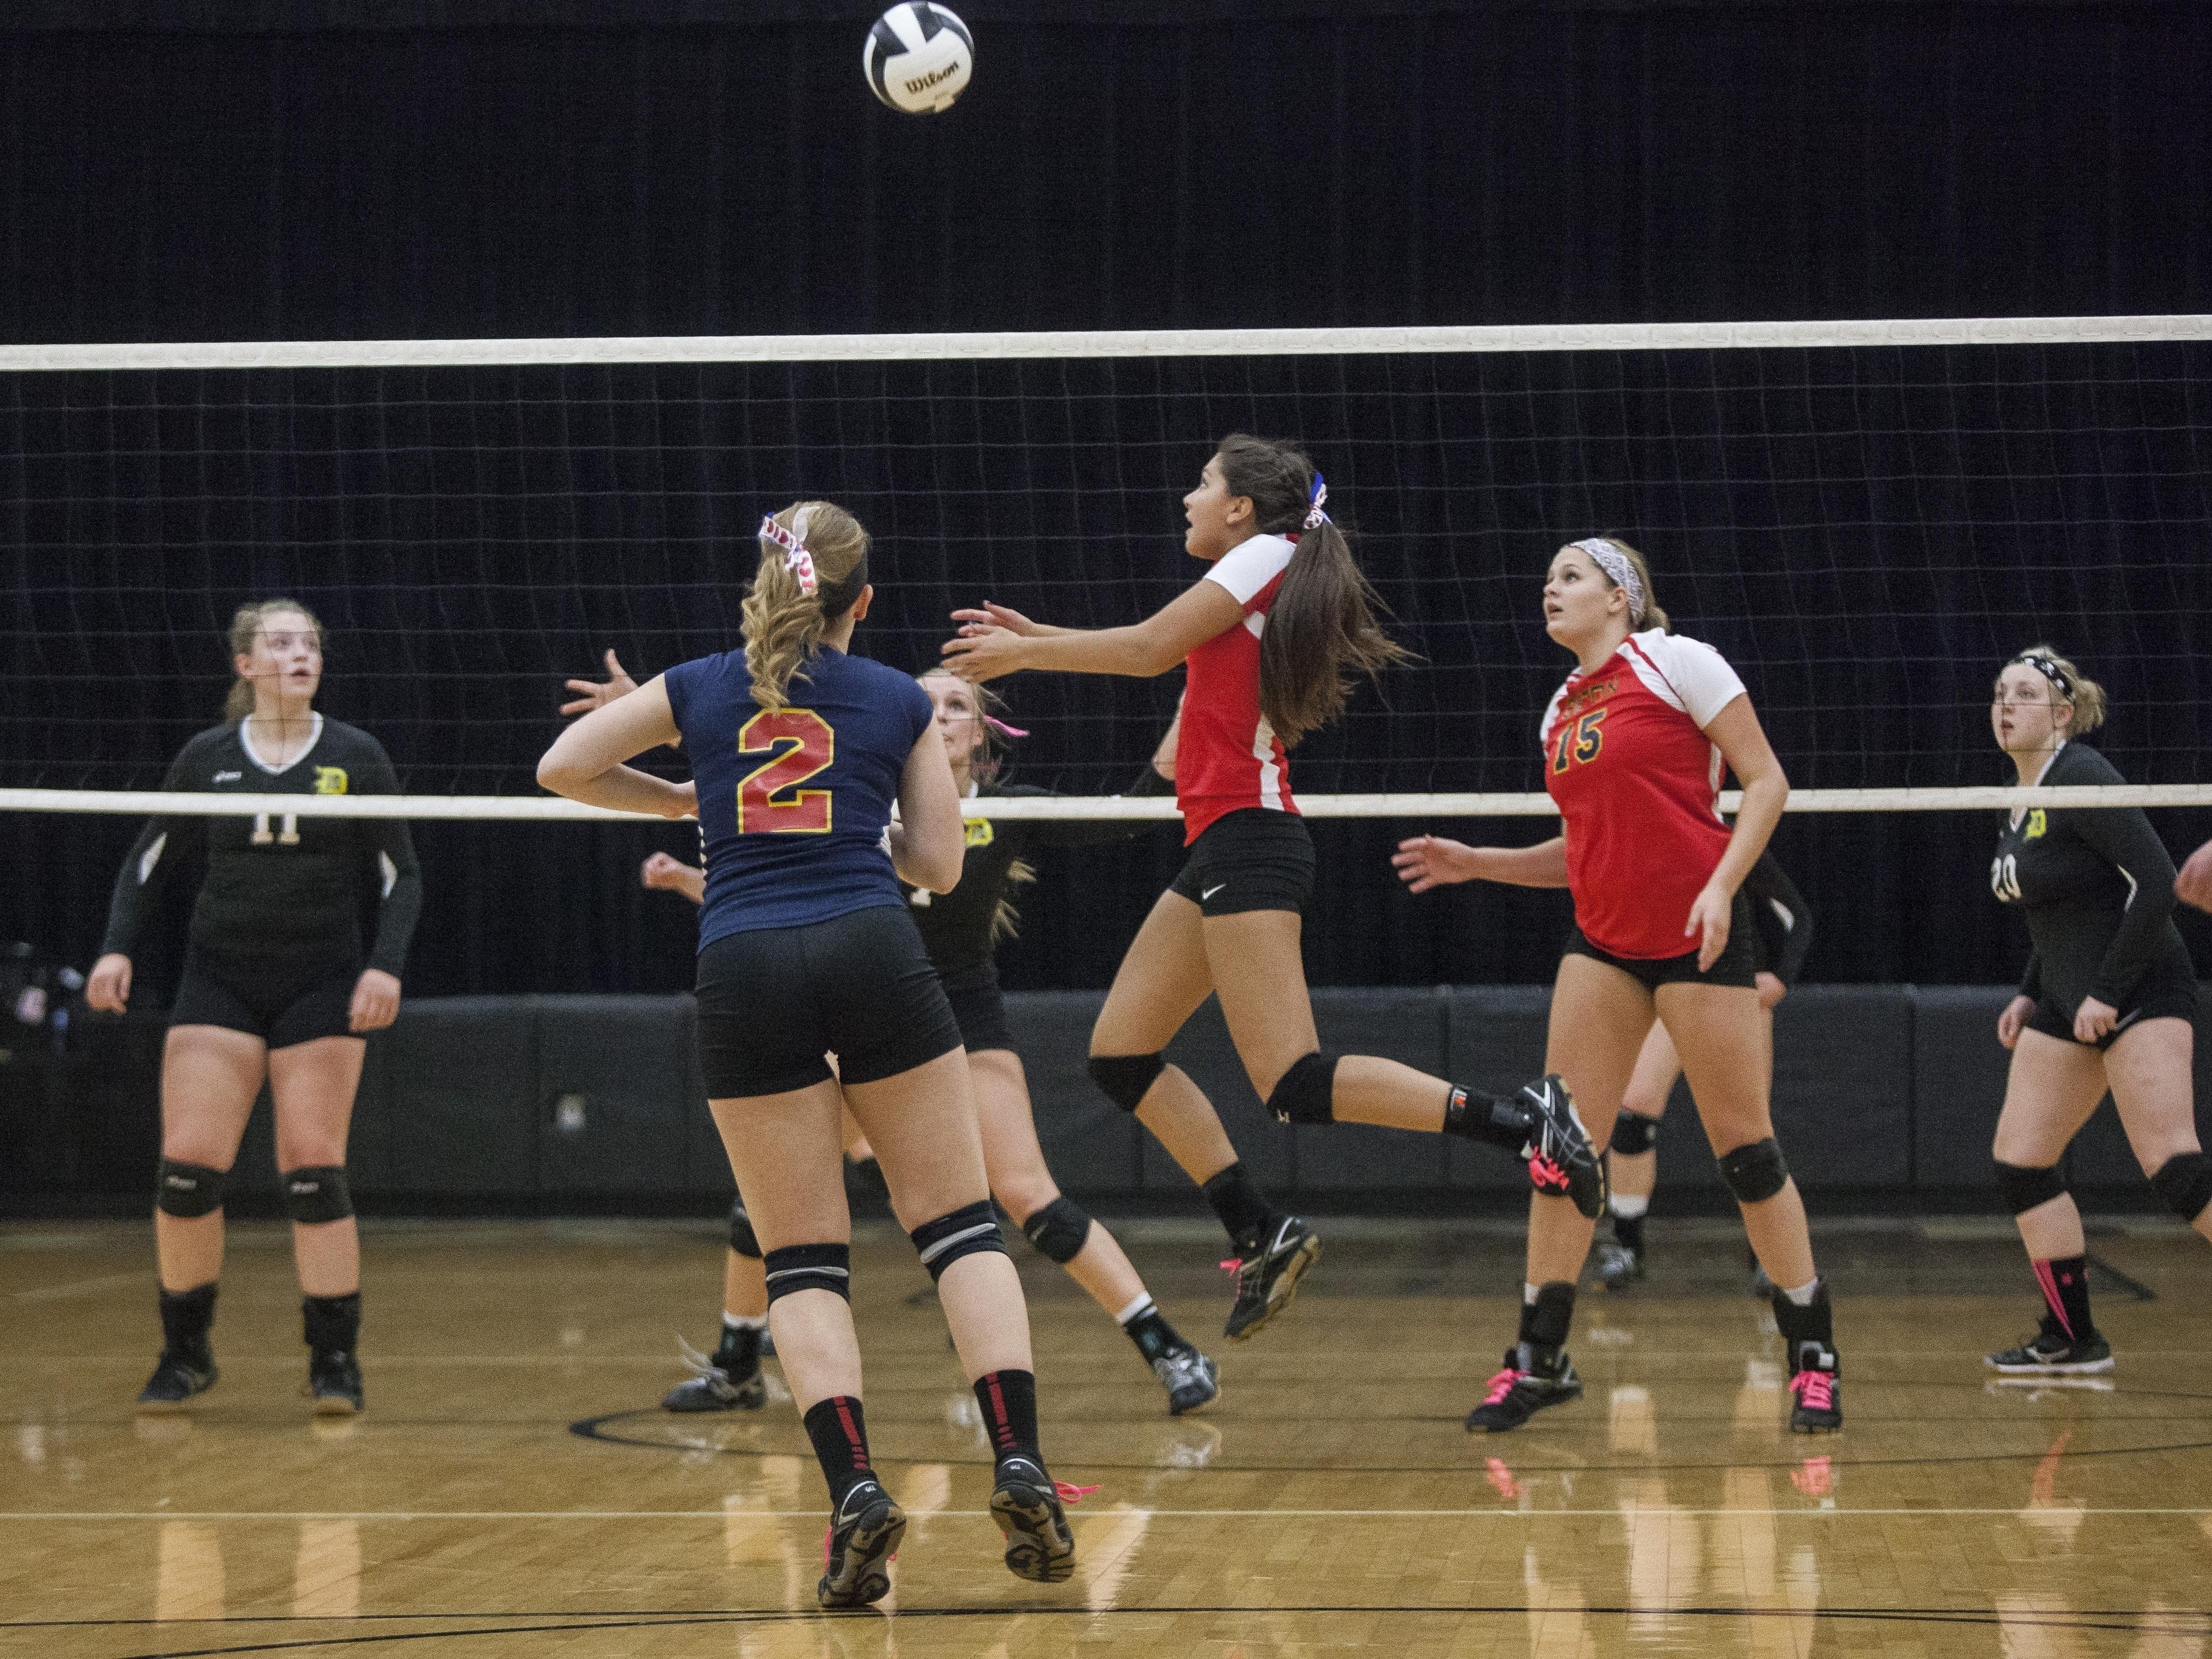 Seton Catholic sets up another attack against Daleville Tuesday during the 1A Daleville Regional at Daleville. Seton Catholic won 3-1.